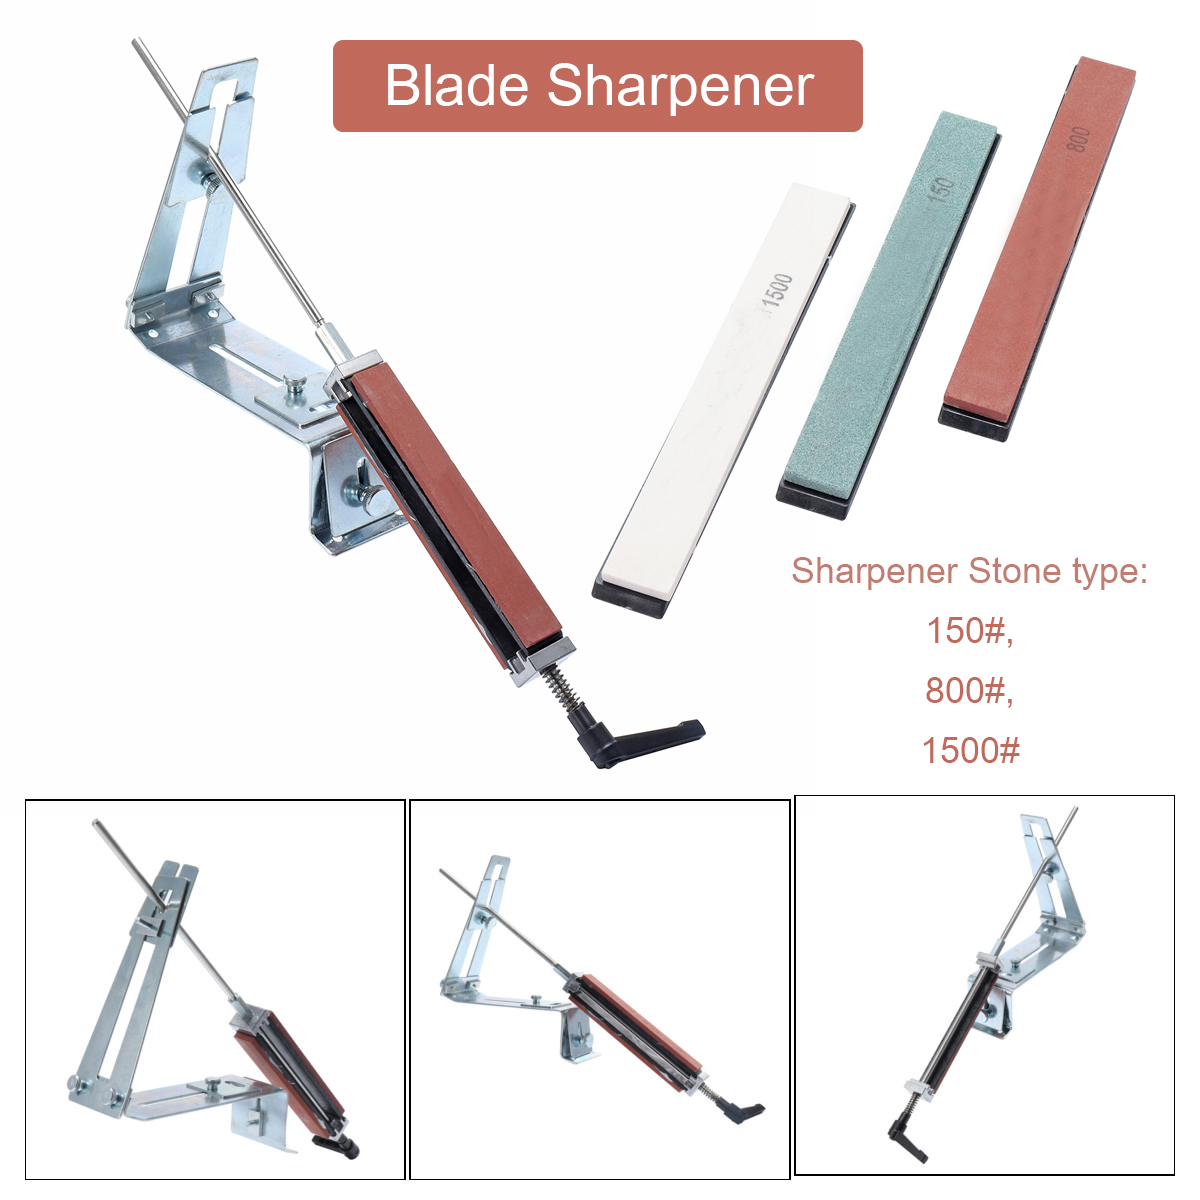 Professional Sharpening System Knife Blades Cutter Sharpener Steel Tools With 3 Stone